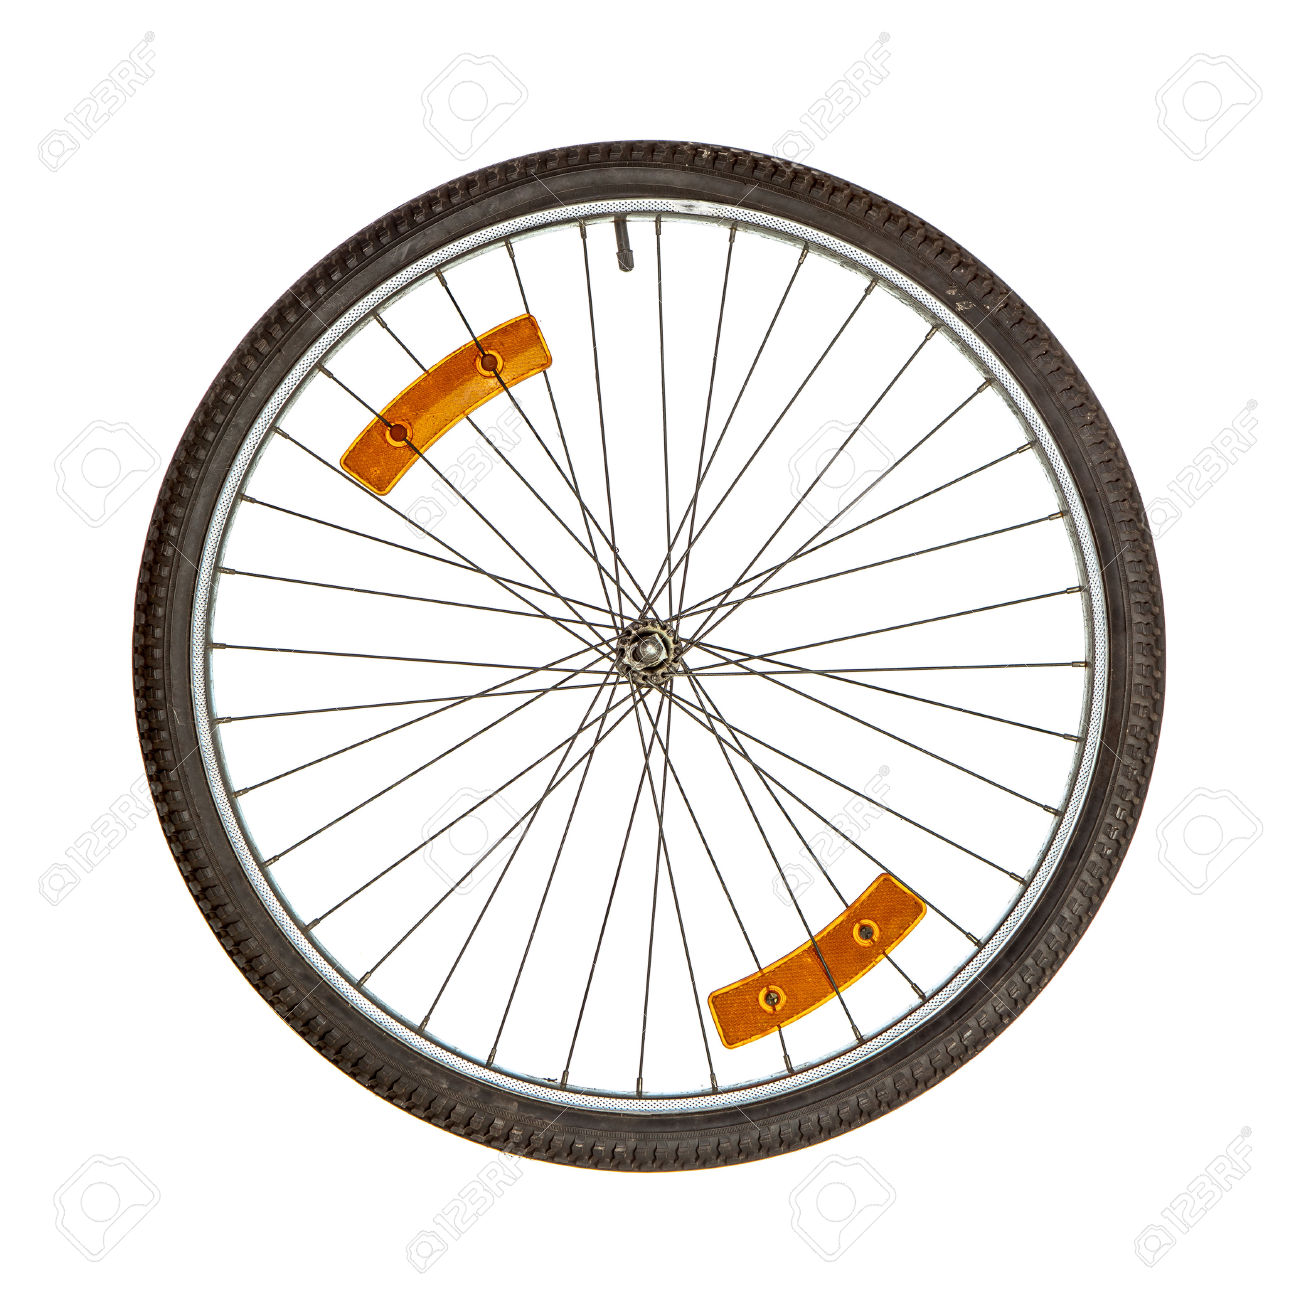 Bicycle Wheel With Two Orange Reflectors On Spikes Isolated Over.